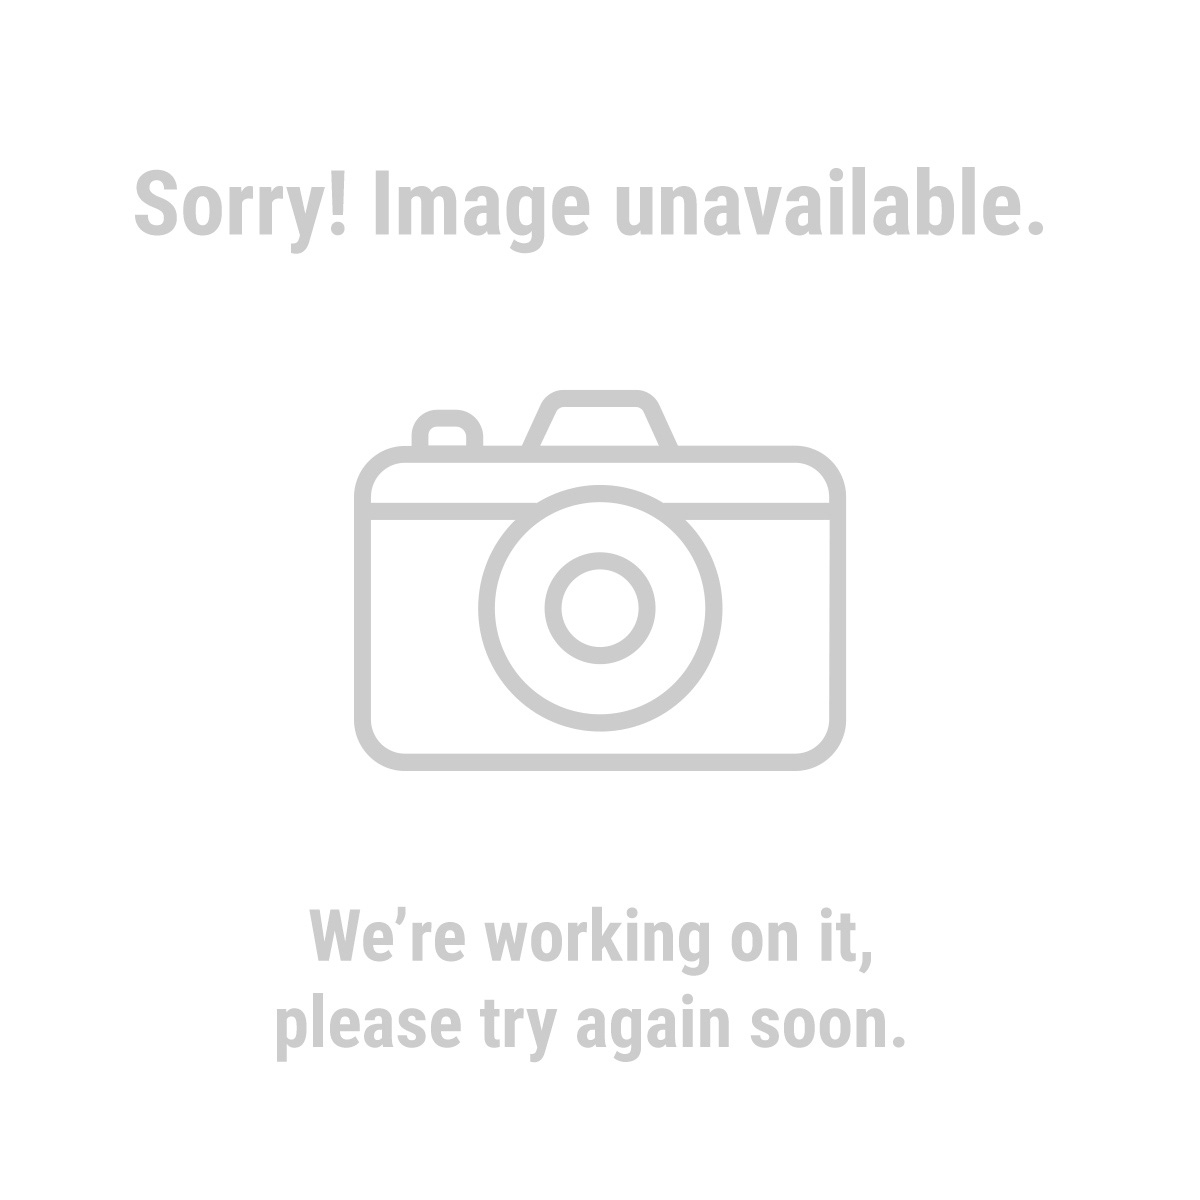 Drill Master 62872 18 Volt 3/8 in. Cordless Drill/Driver And Flashlight Kit